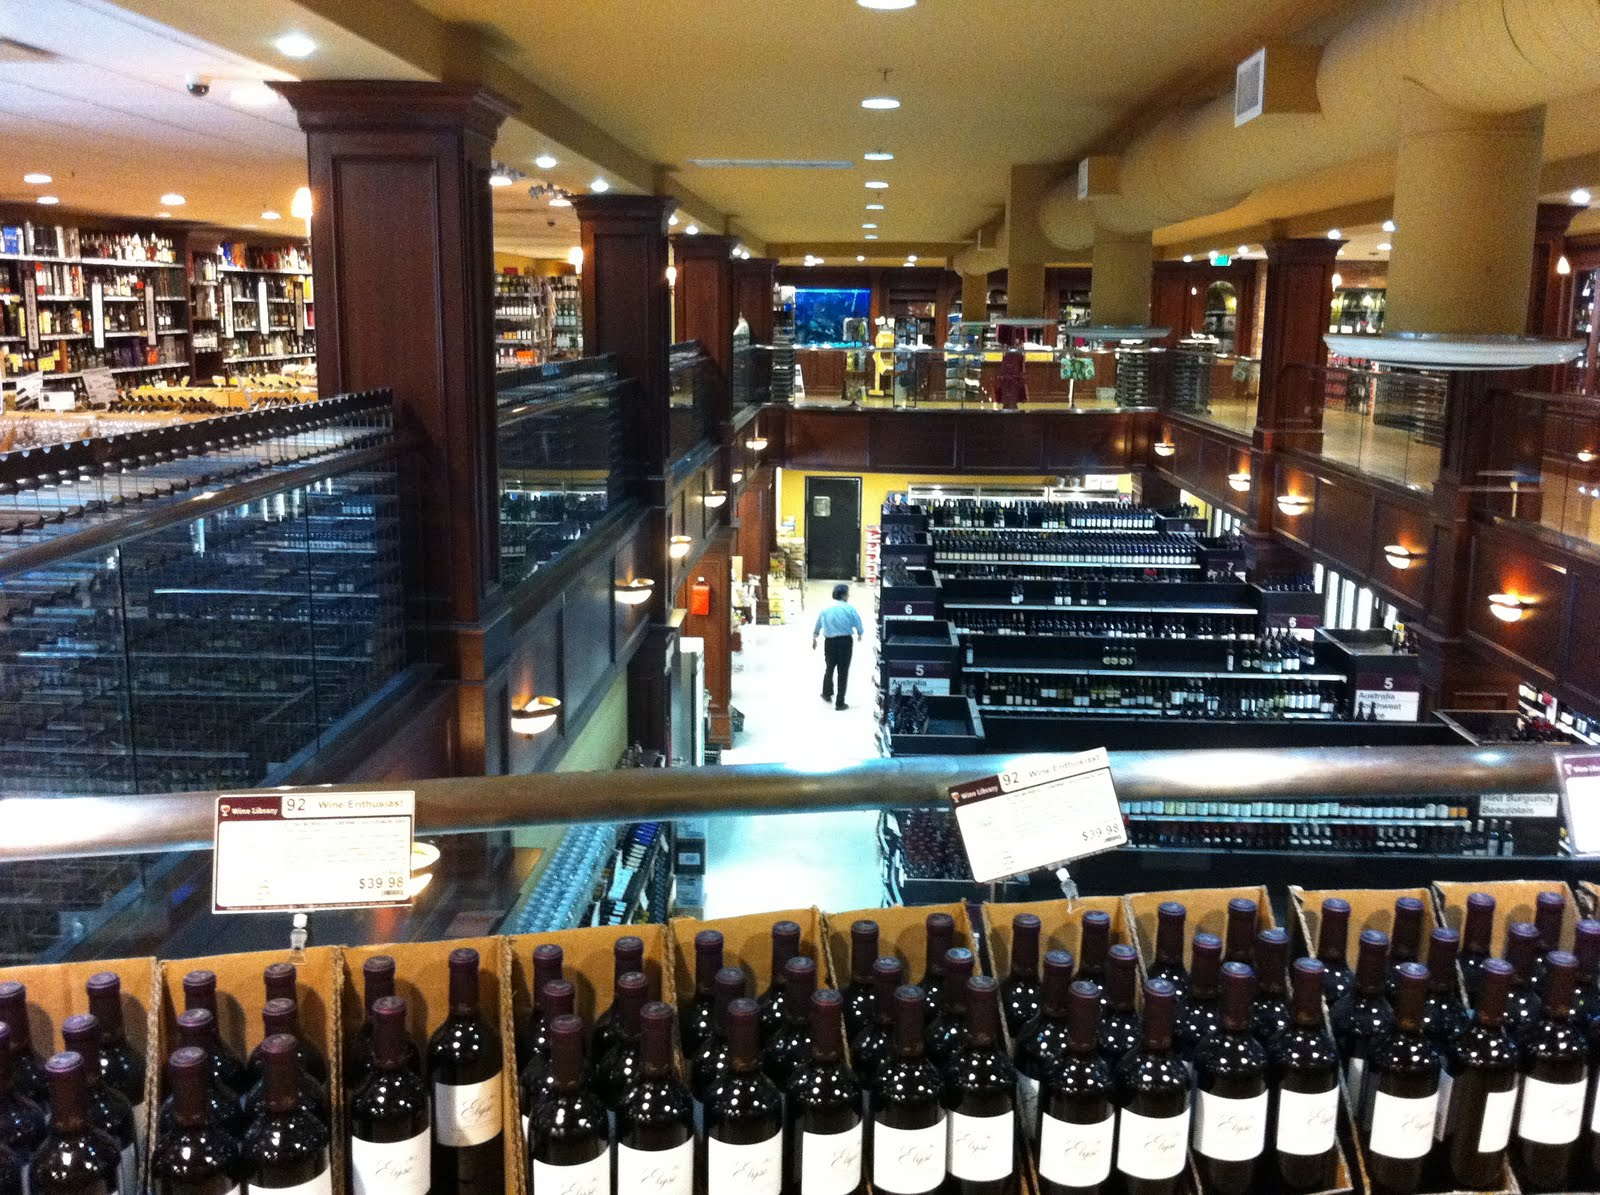 The latest Tweets from Wine Library (@WineLibrary). The Internet's leading discount wine retailer. Springfield, New Jersey.